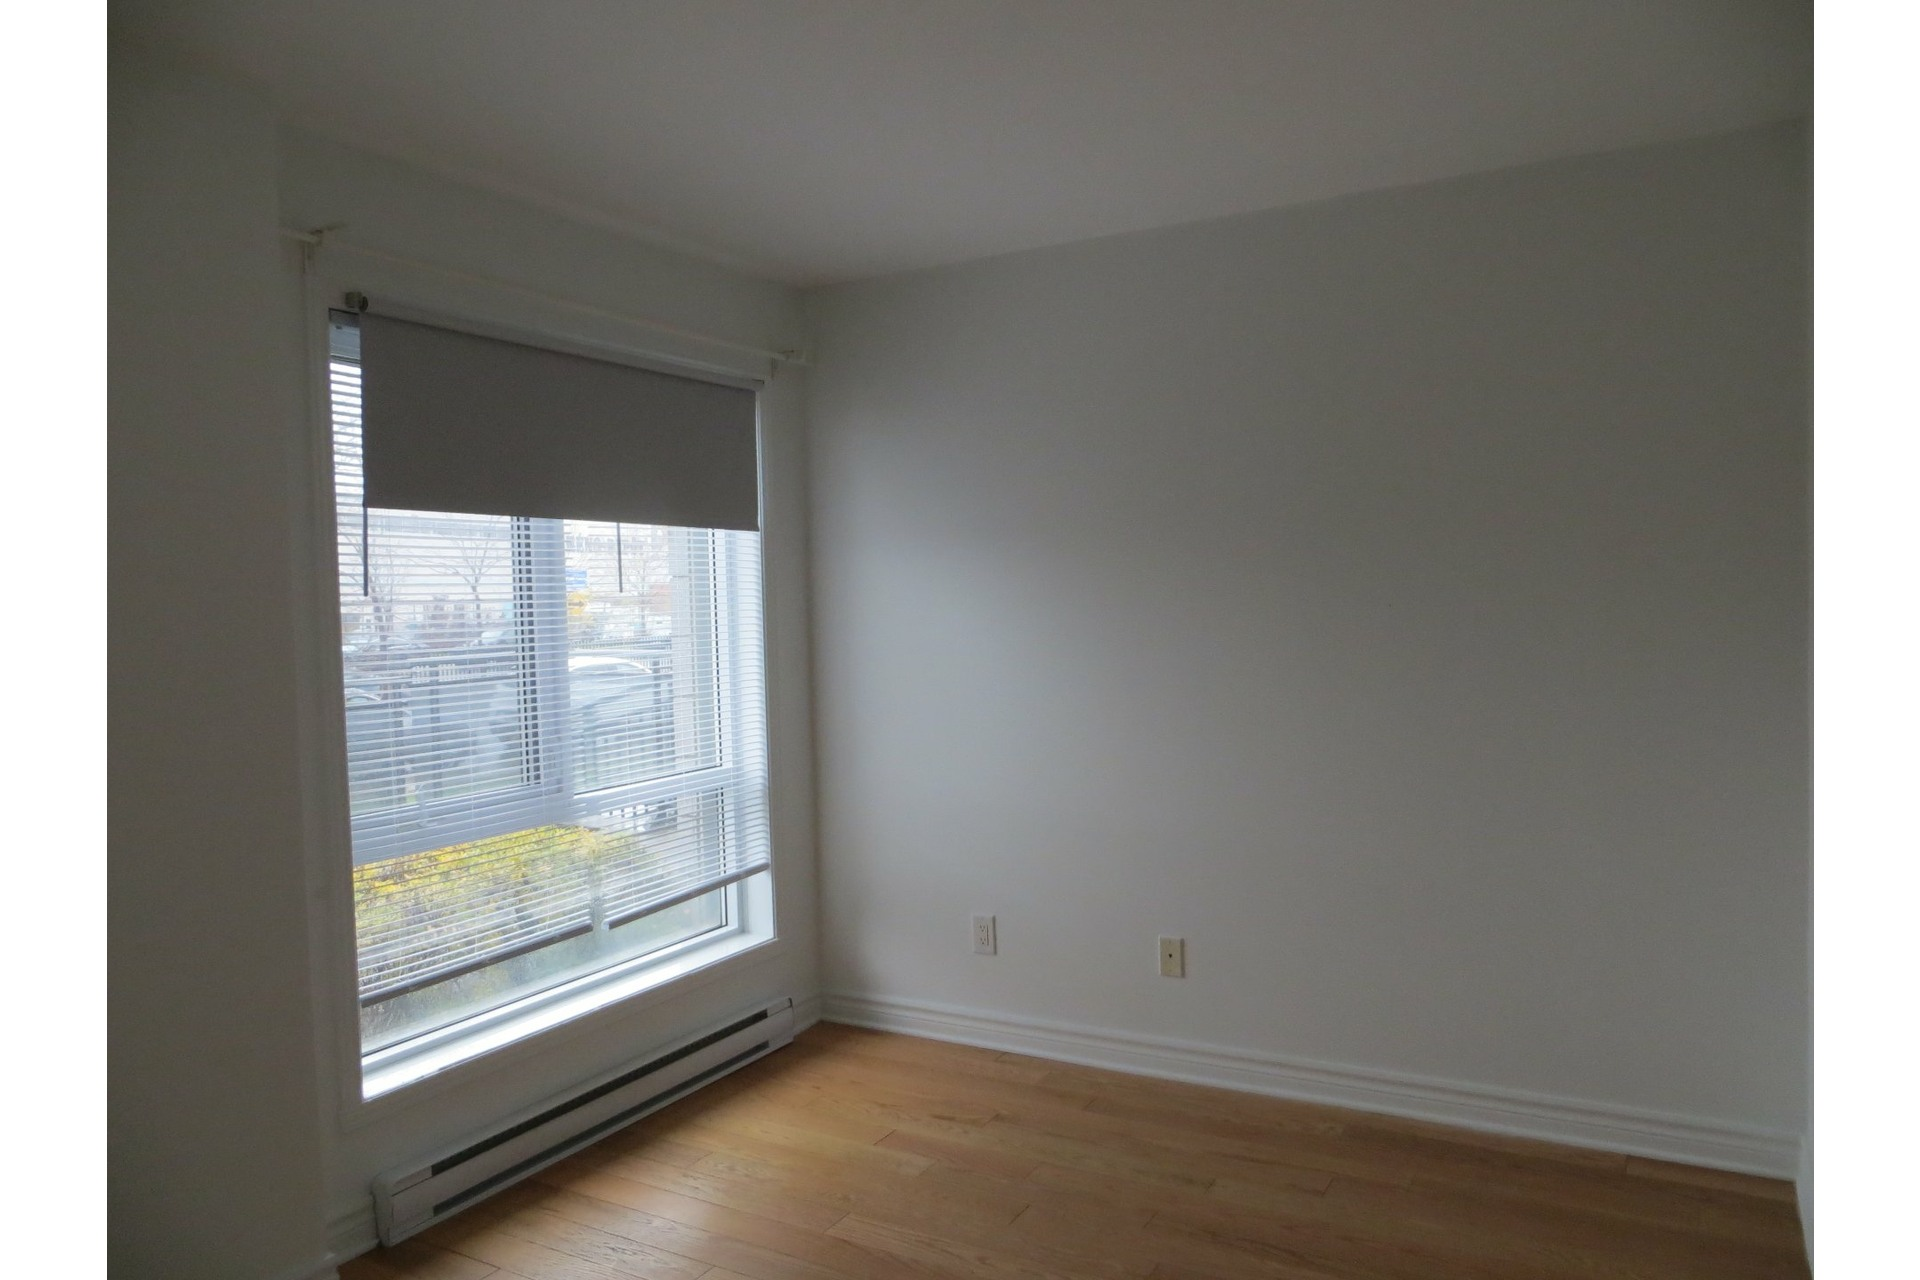 image 16 - Apartment For rent Laval-des-Rapides Laval  - 5 rooms